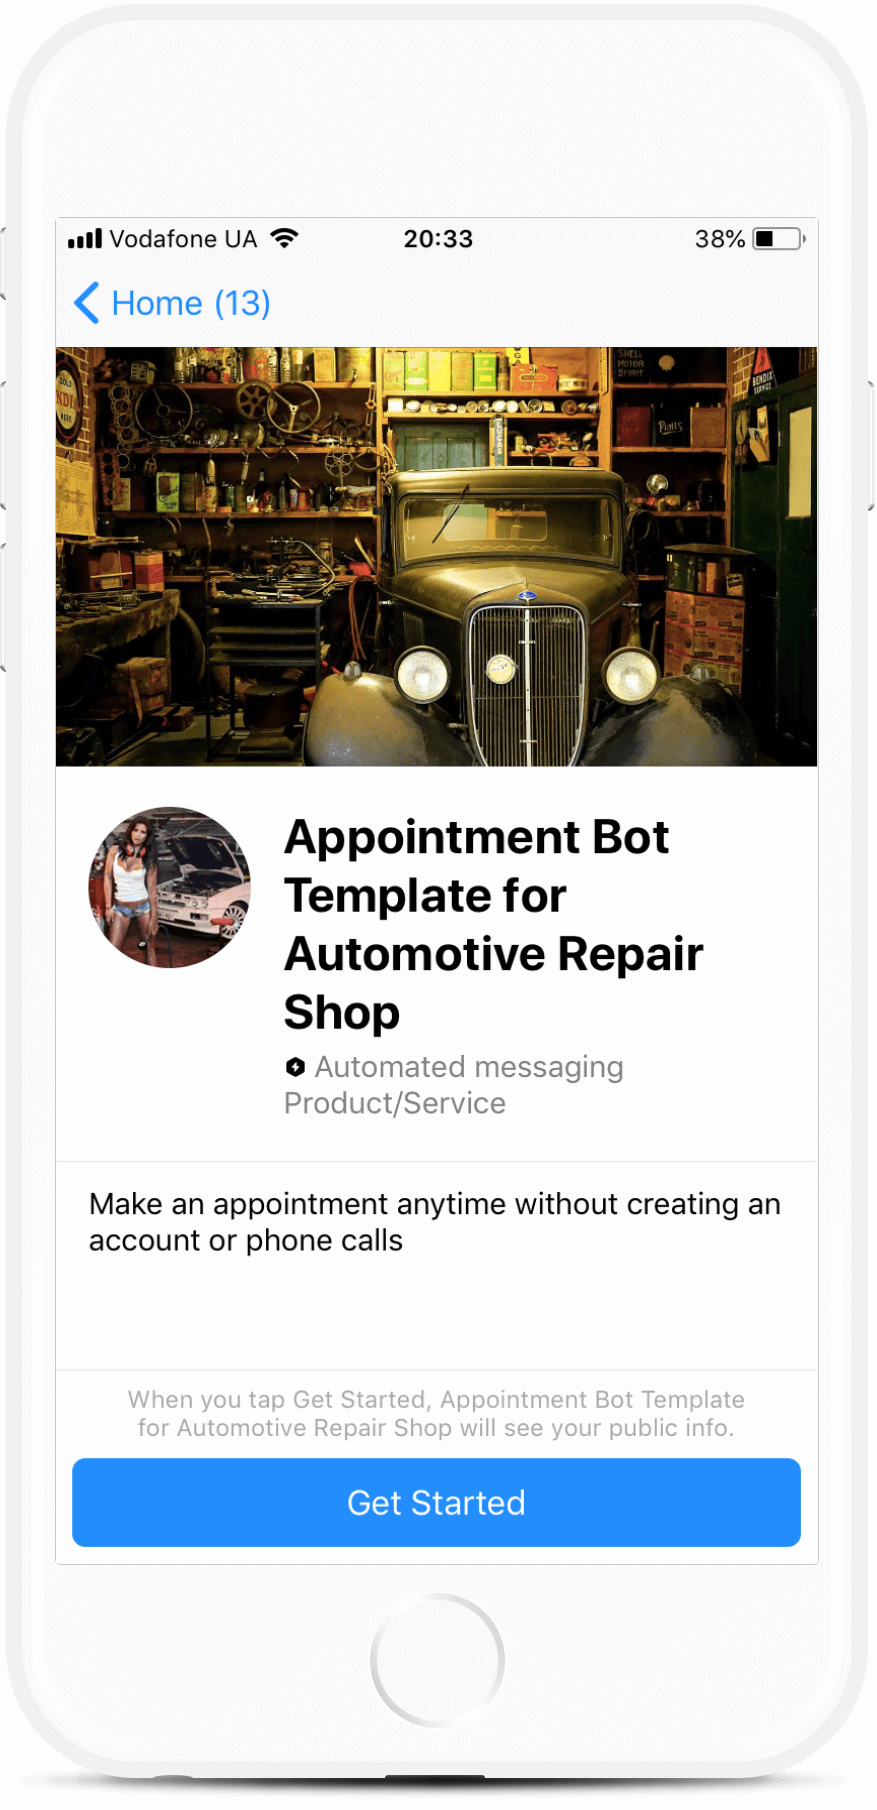 Appointment Bot Template for Automotive Repair Shop bot screenshot